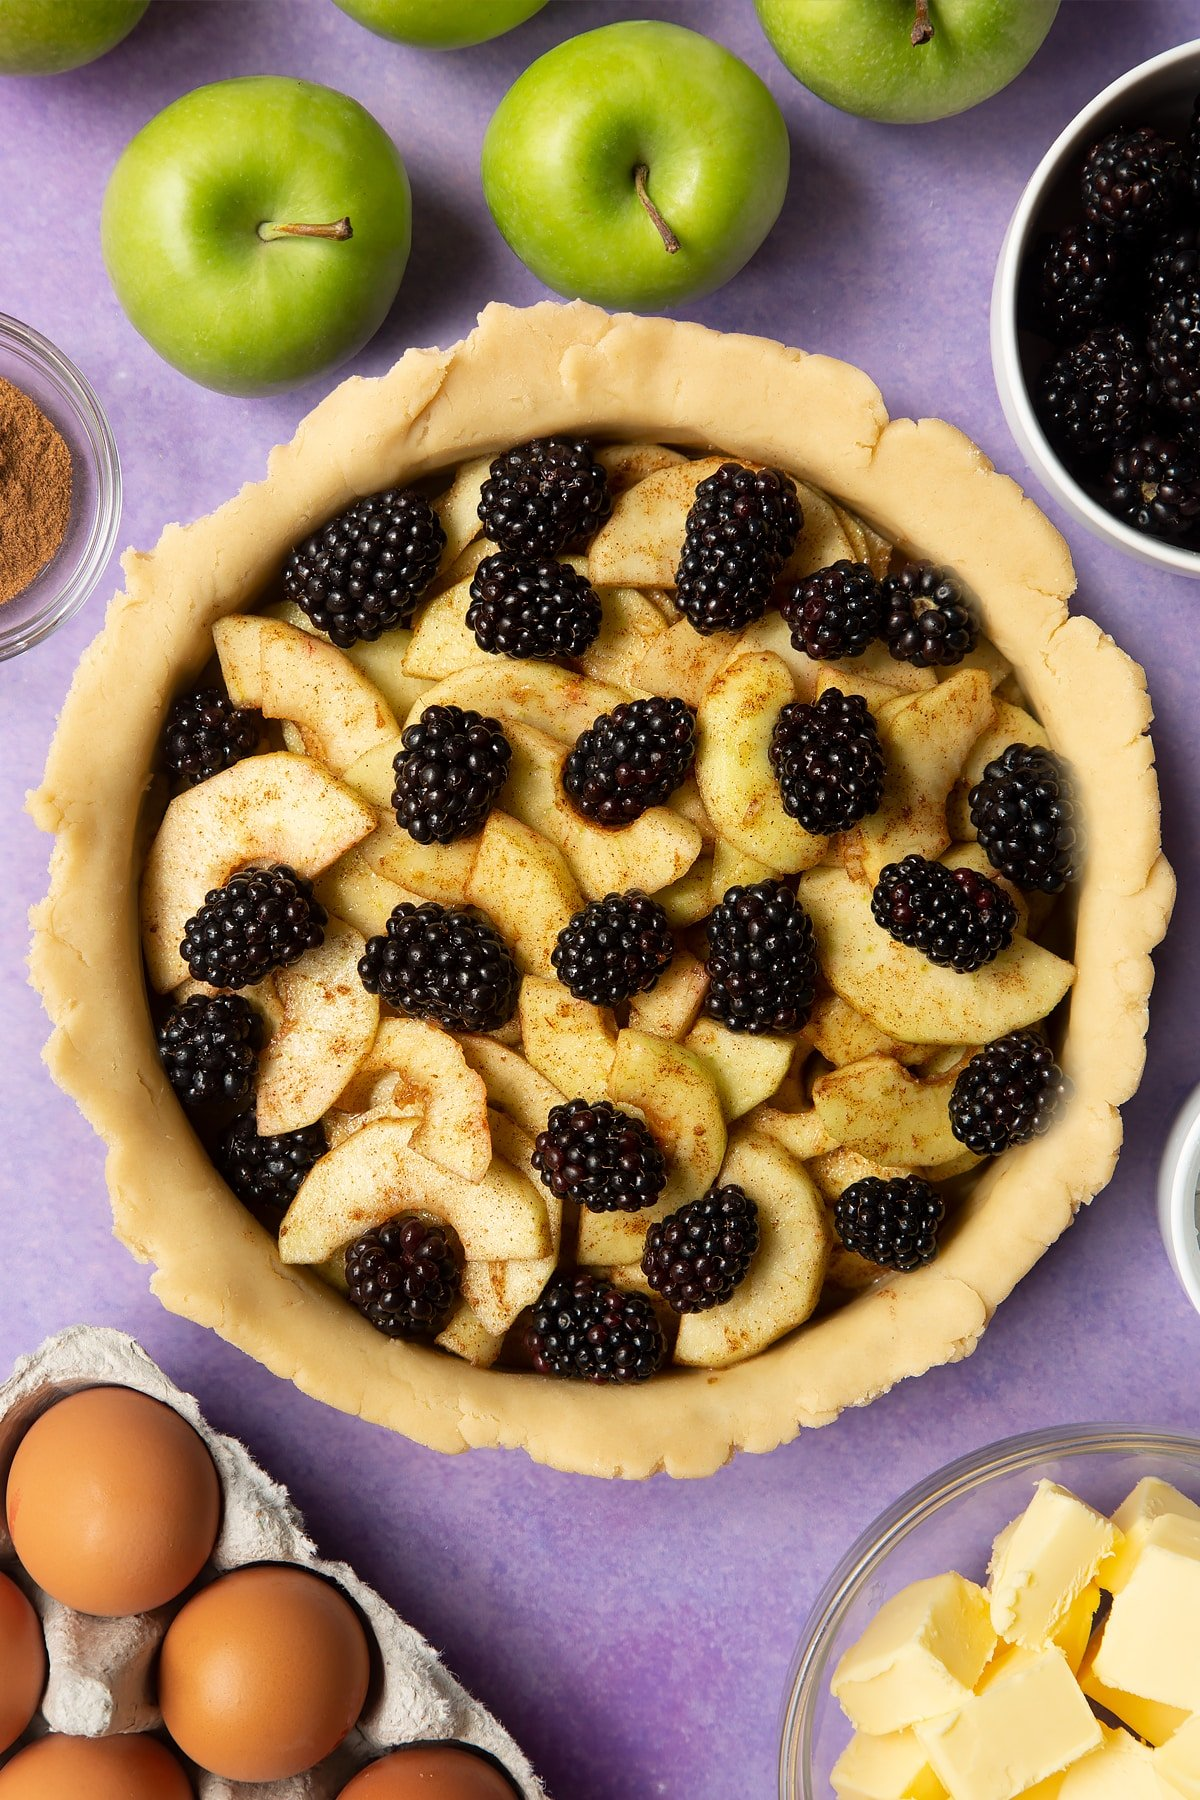 A pie tin lined with pastry and filled with apple slices and blackberries. Ingredients to make apple and blackberry pie surround the tin.